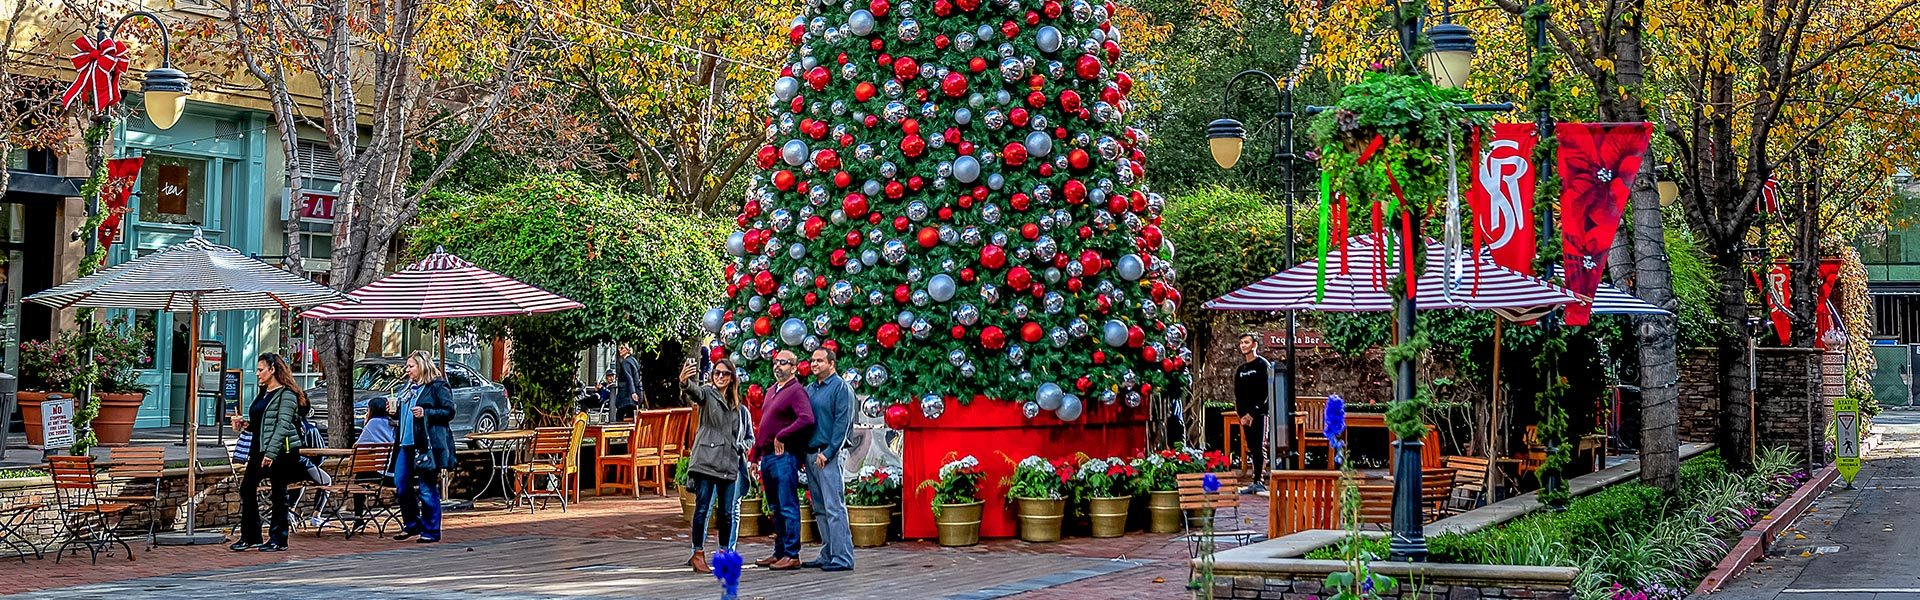 People pose for selfie in front of giant outdoor Christmas tree at open-air mall.